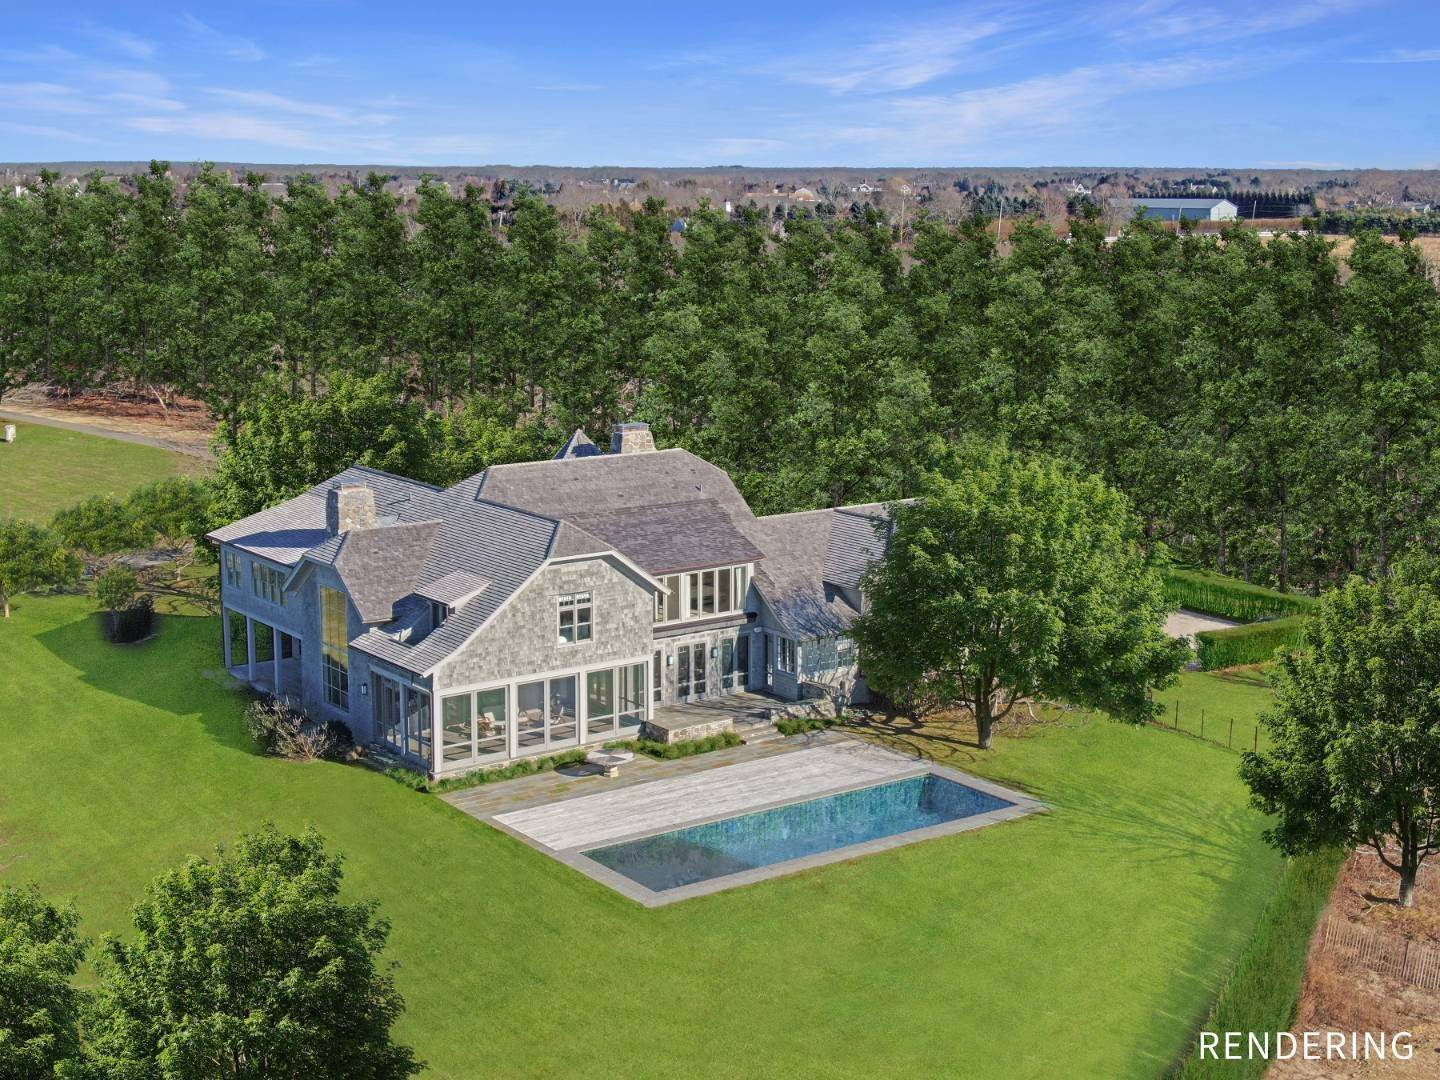 Single Family Home for Sale at Heart Of The Hamptons Contemporary 200 Guyer Rd, Bridgehampton, NY 11932